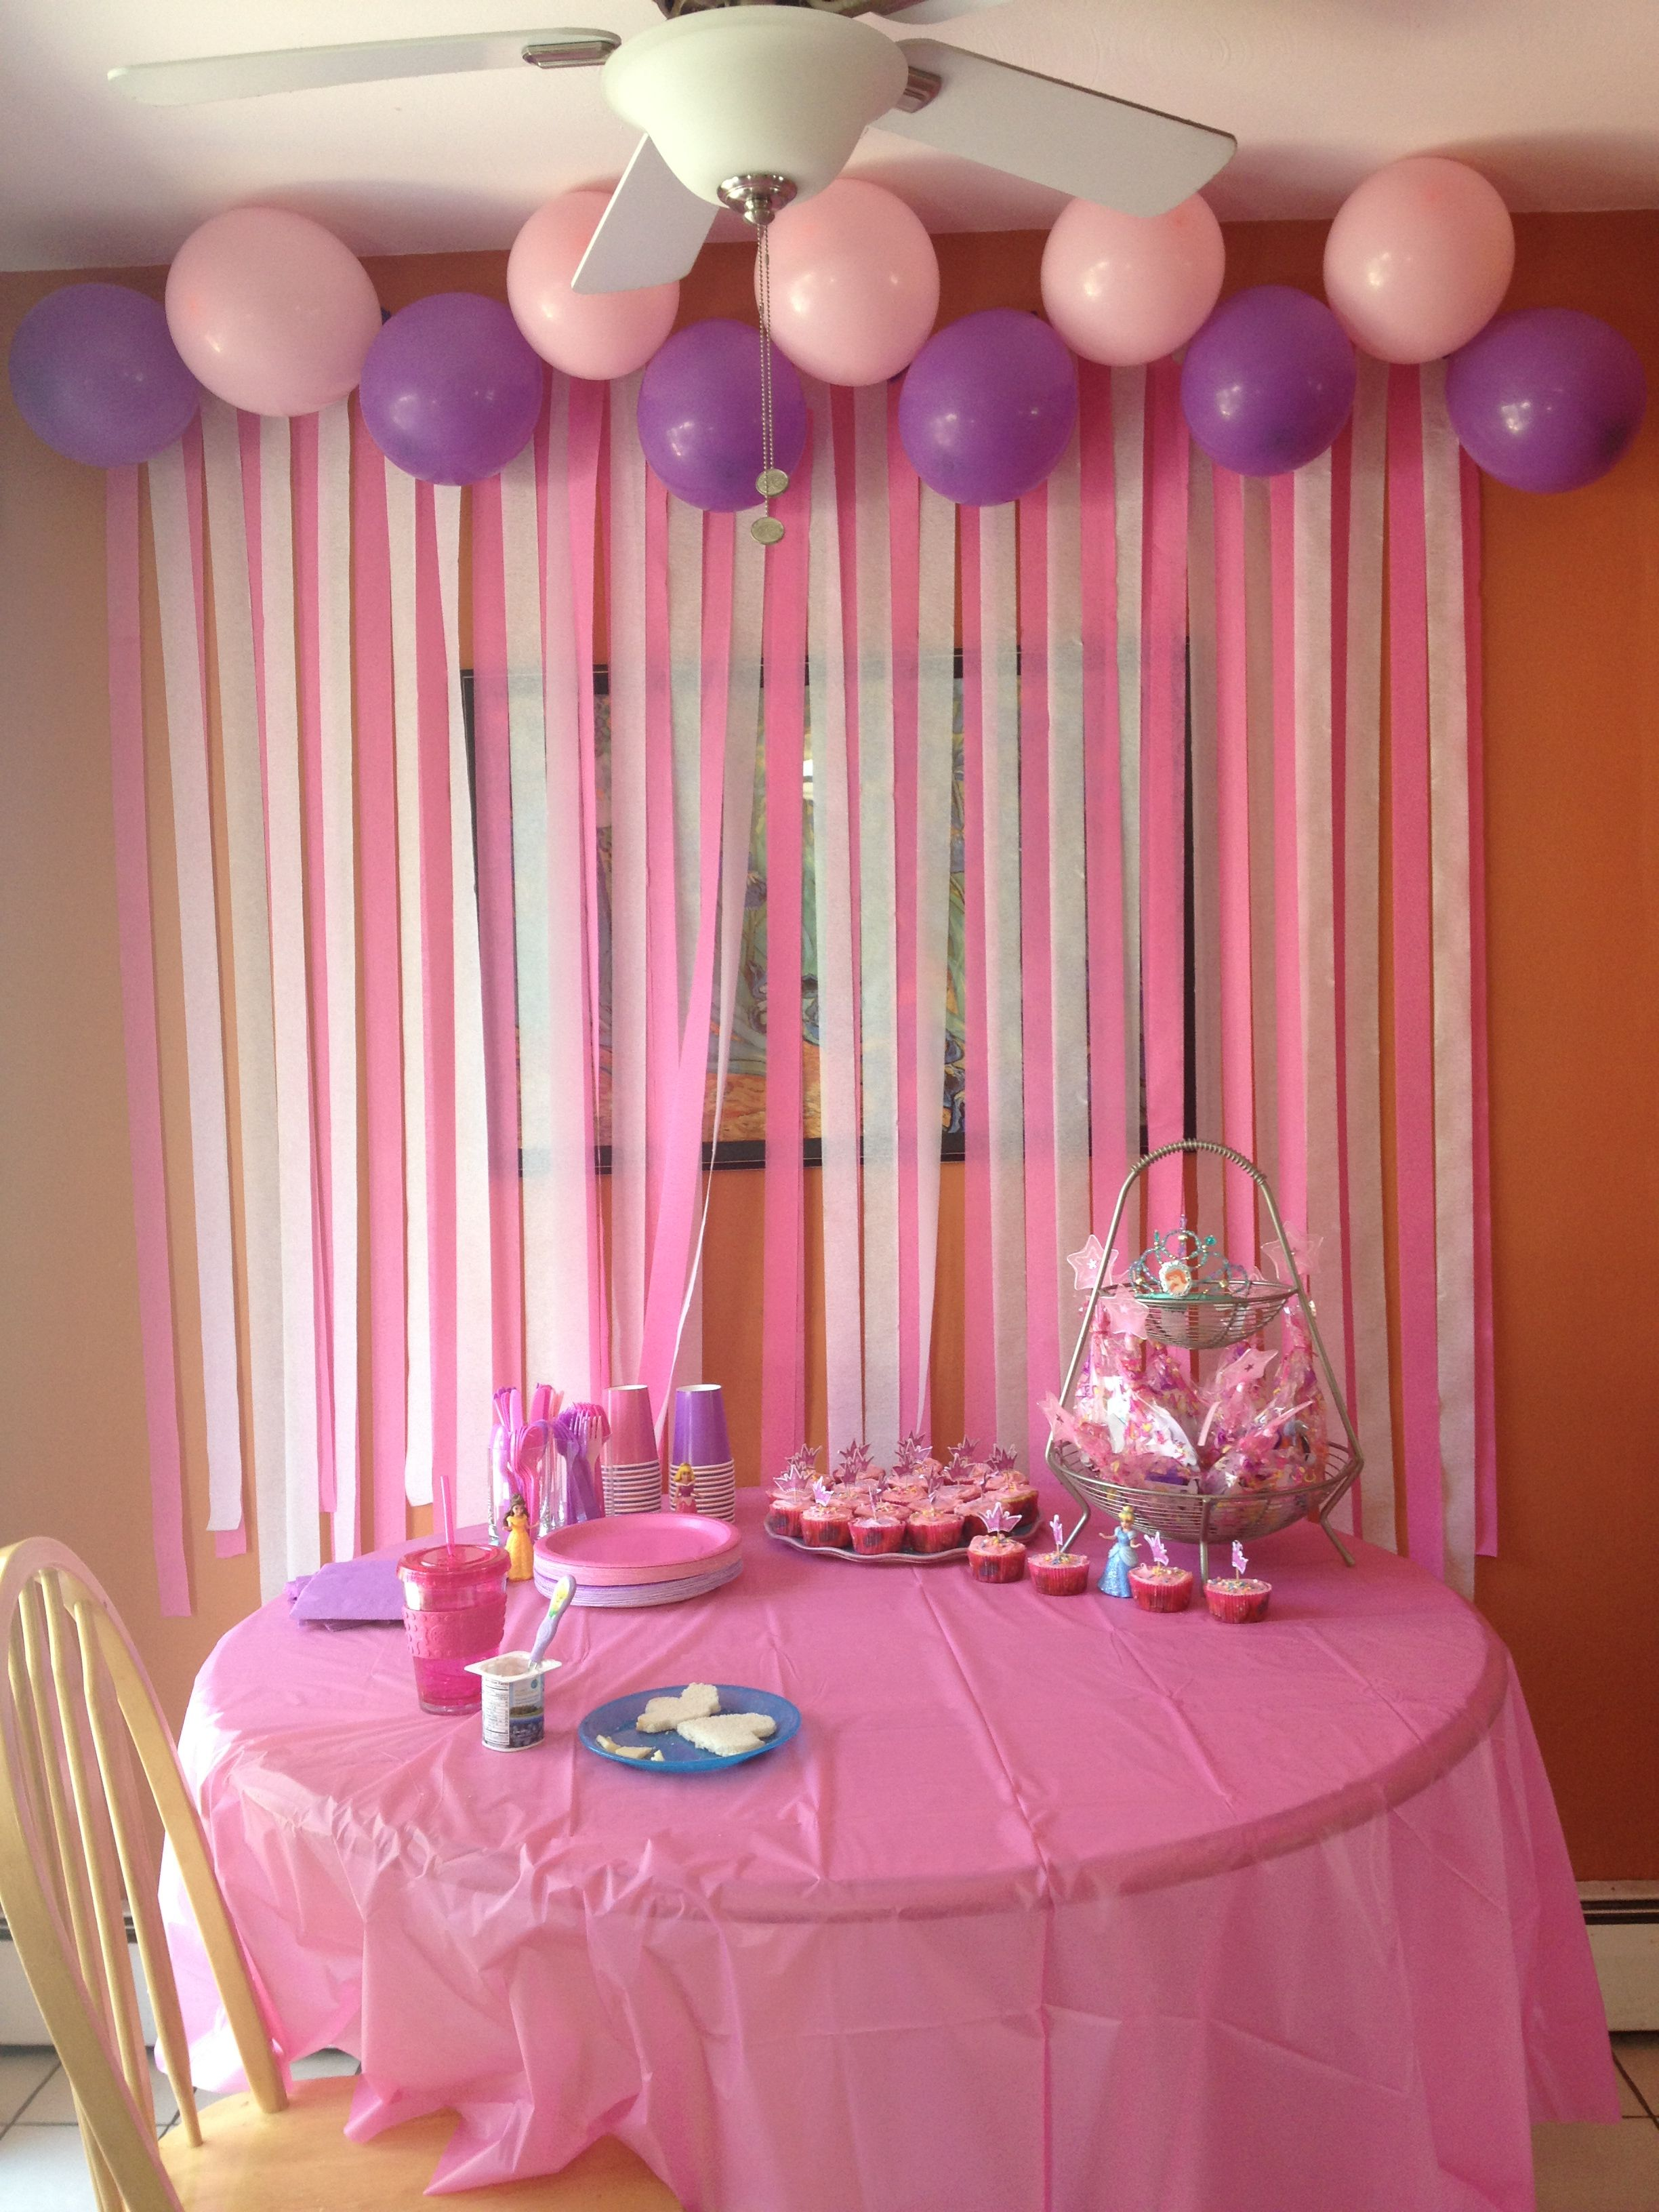 Diy Birthday Party Decorations Love The Streamers On Wall Colors Also Kayel Md Kayelmd Rh